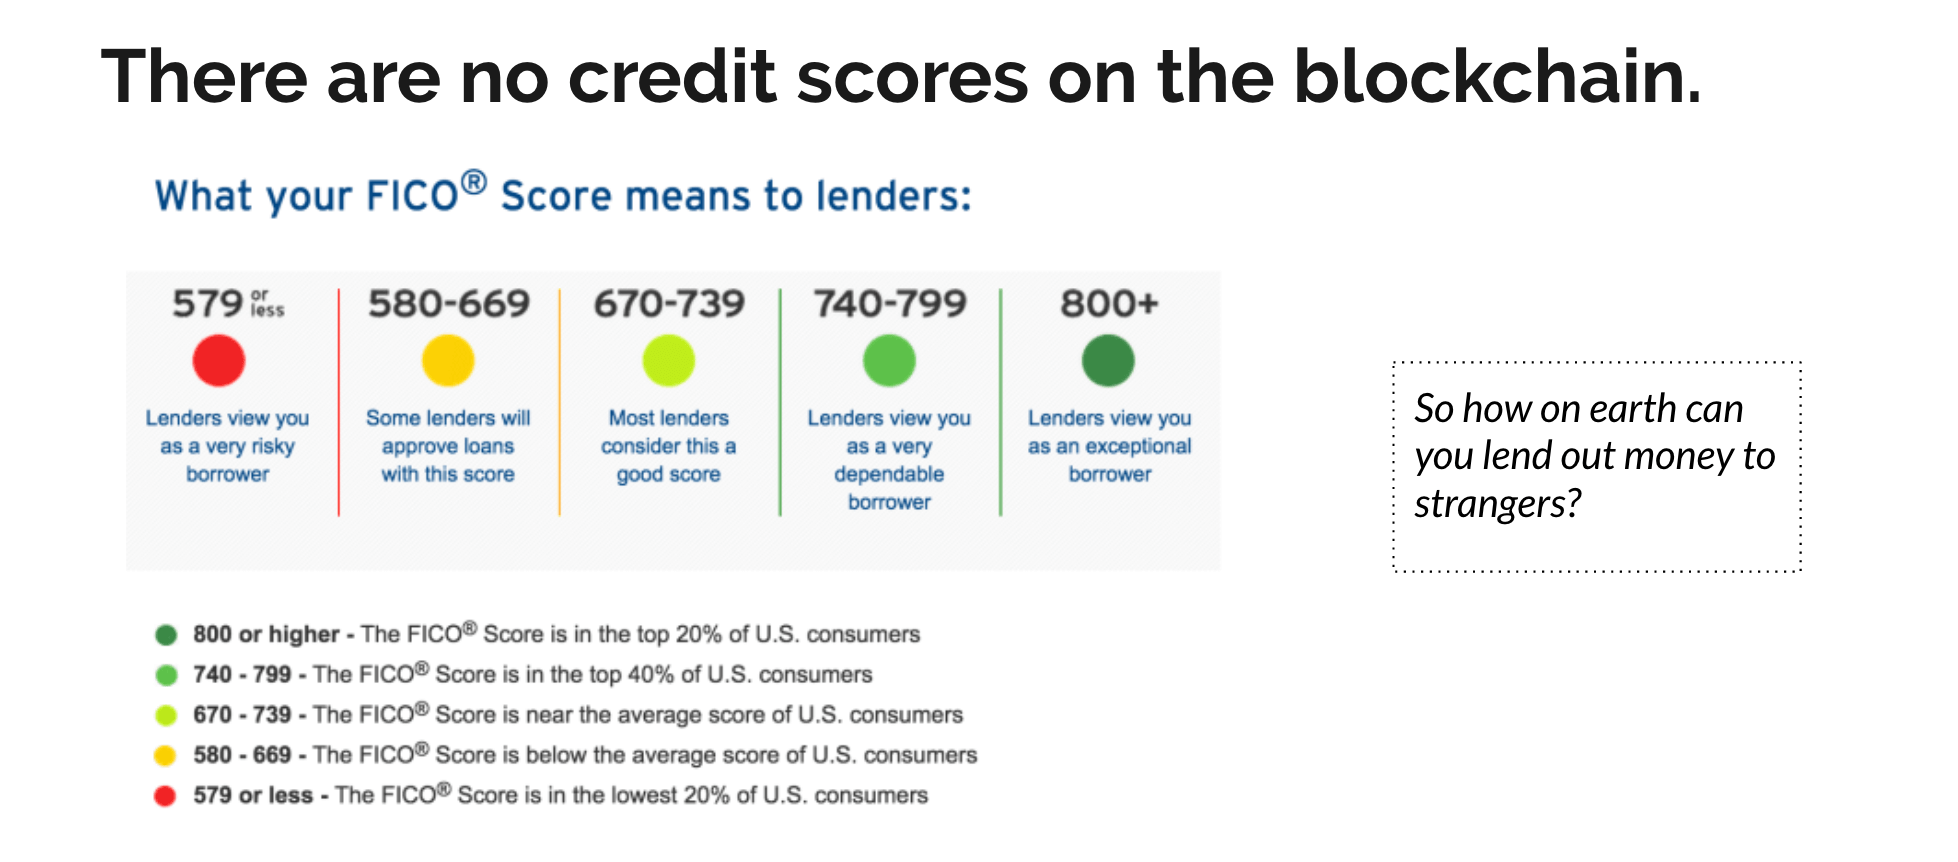 There are no credit scores on the blockchain